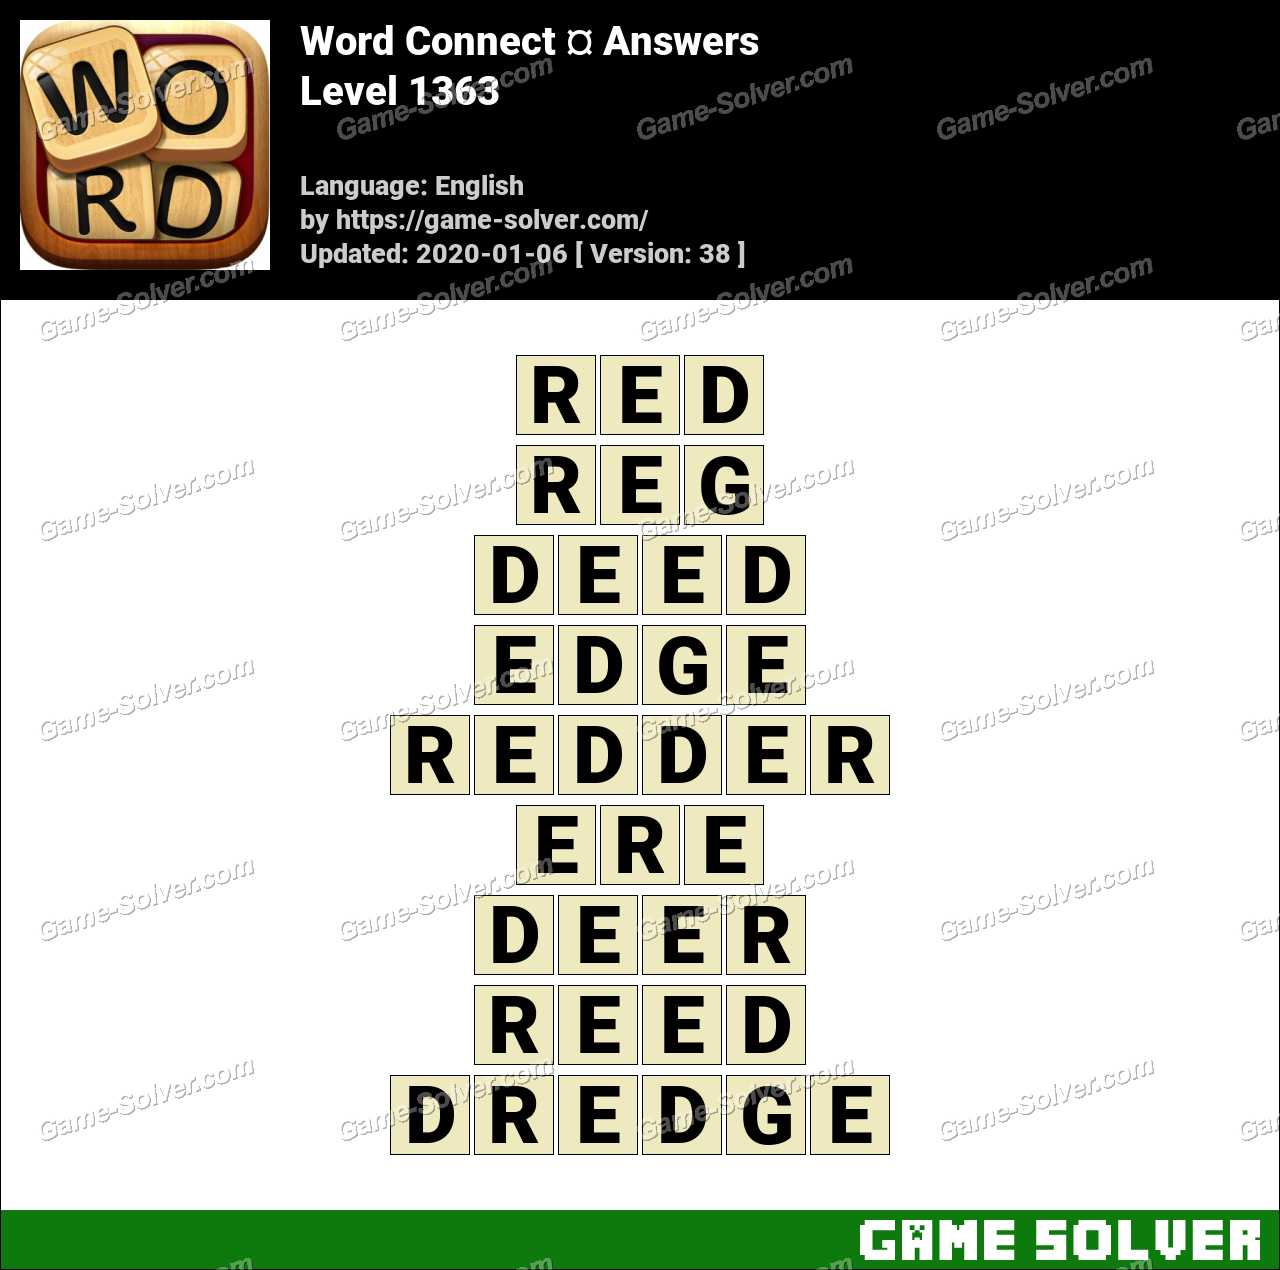 Word Connect Level 1363 Answers